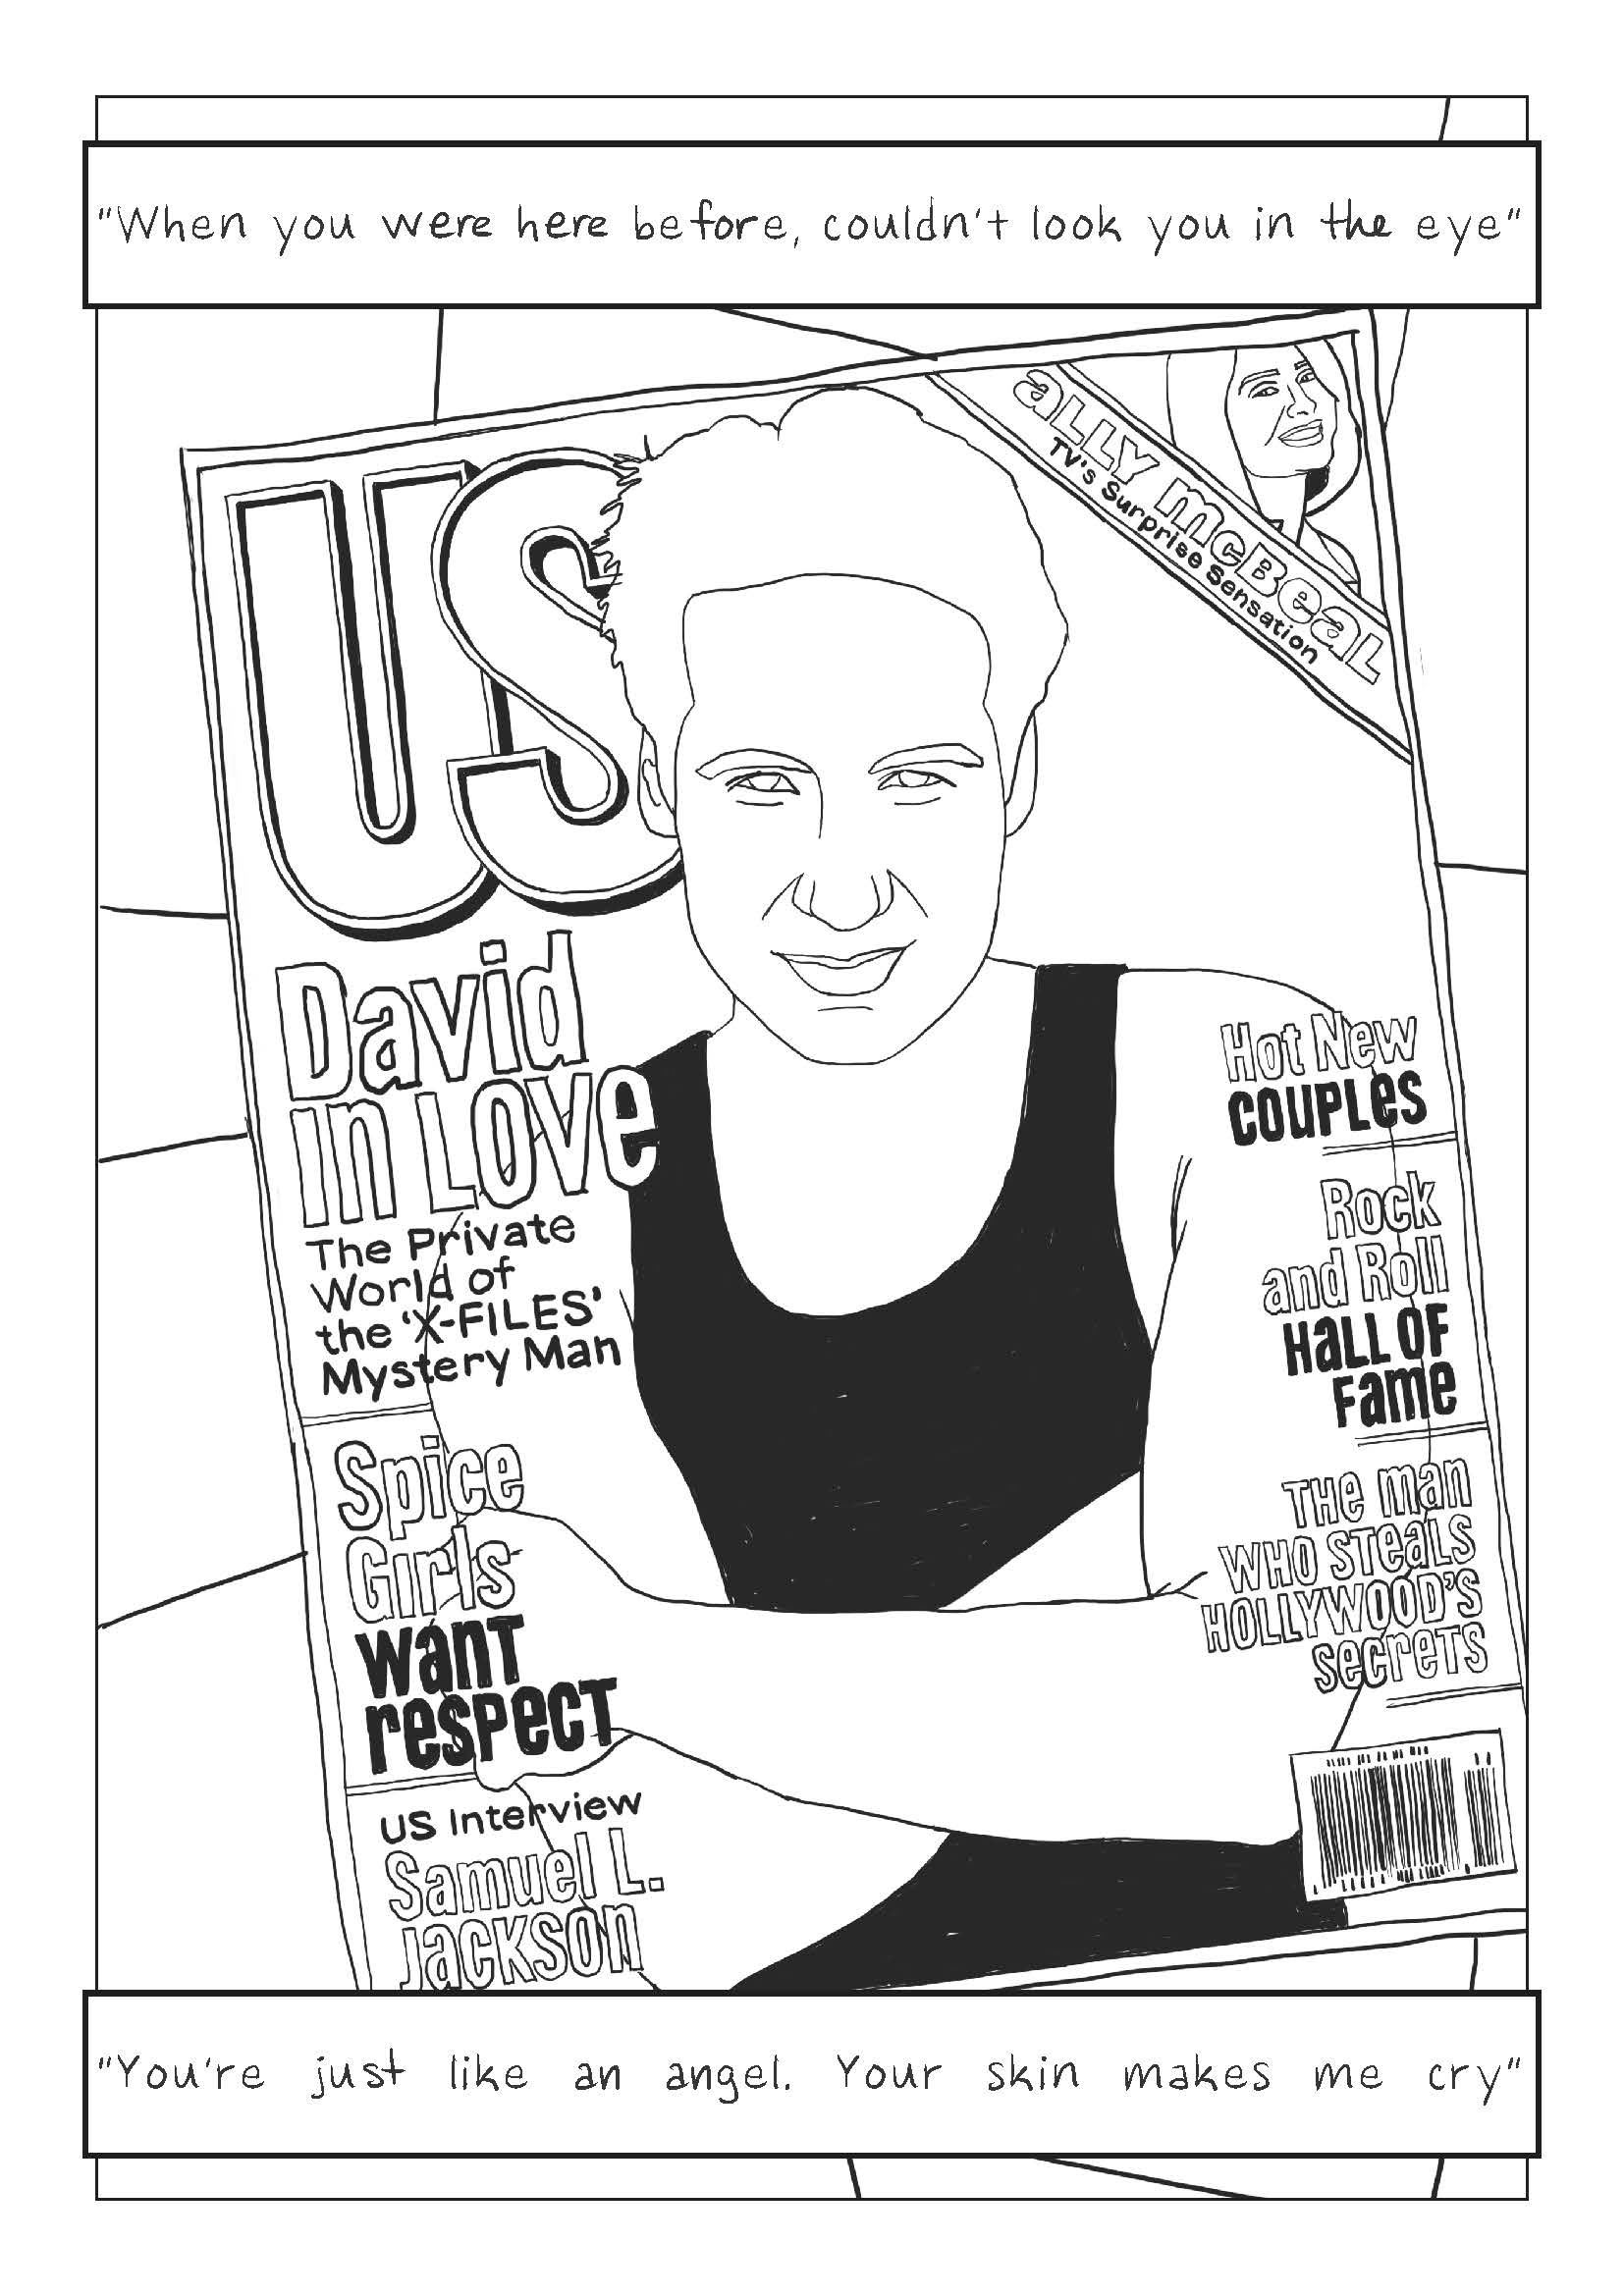 """""""When you were here before, couldn't look you in the eye. You're just like an angel. Your skin makes me cry."""" David Duchovny on the cover of Us magazine."""